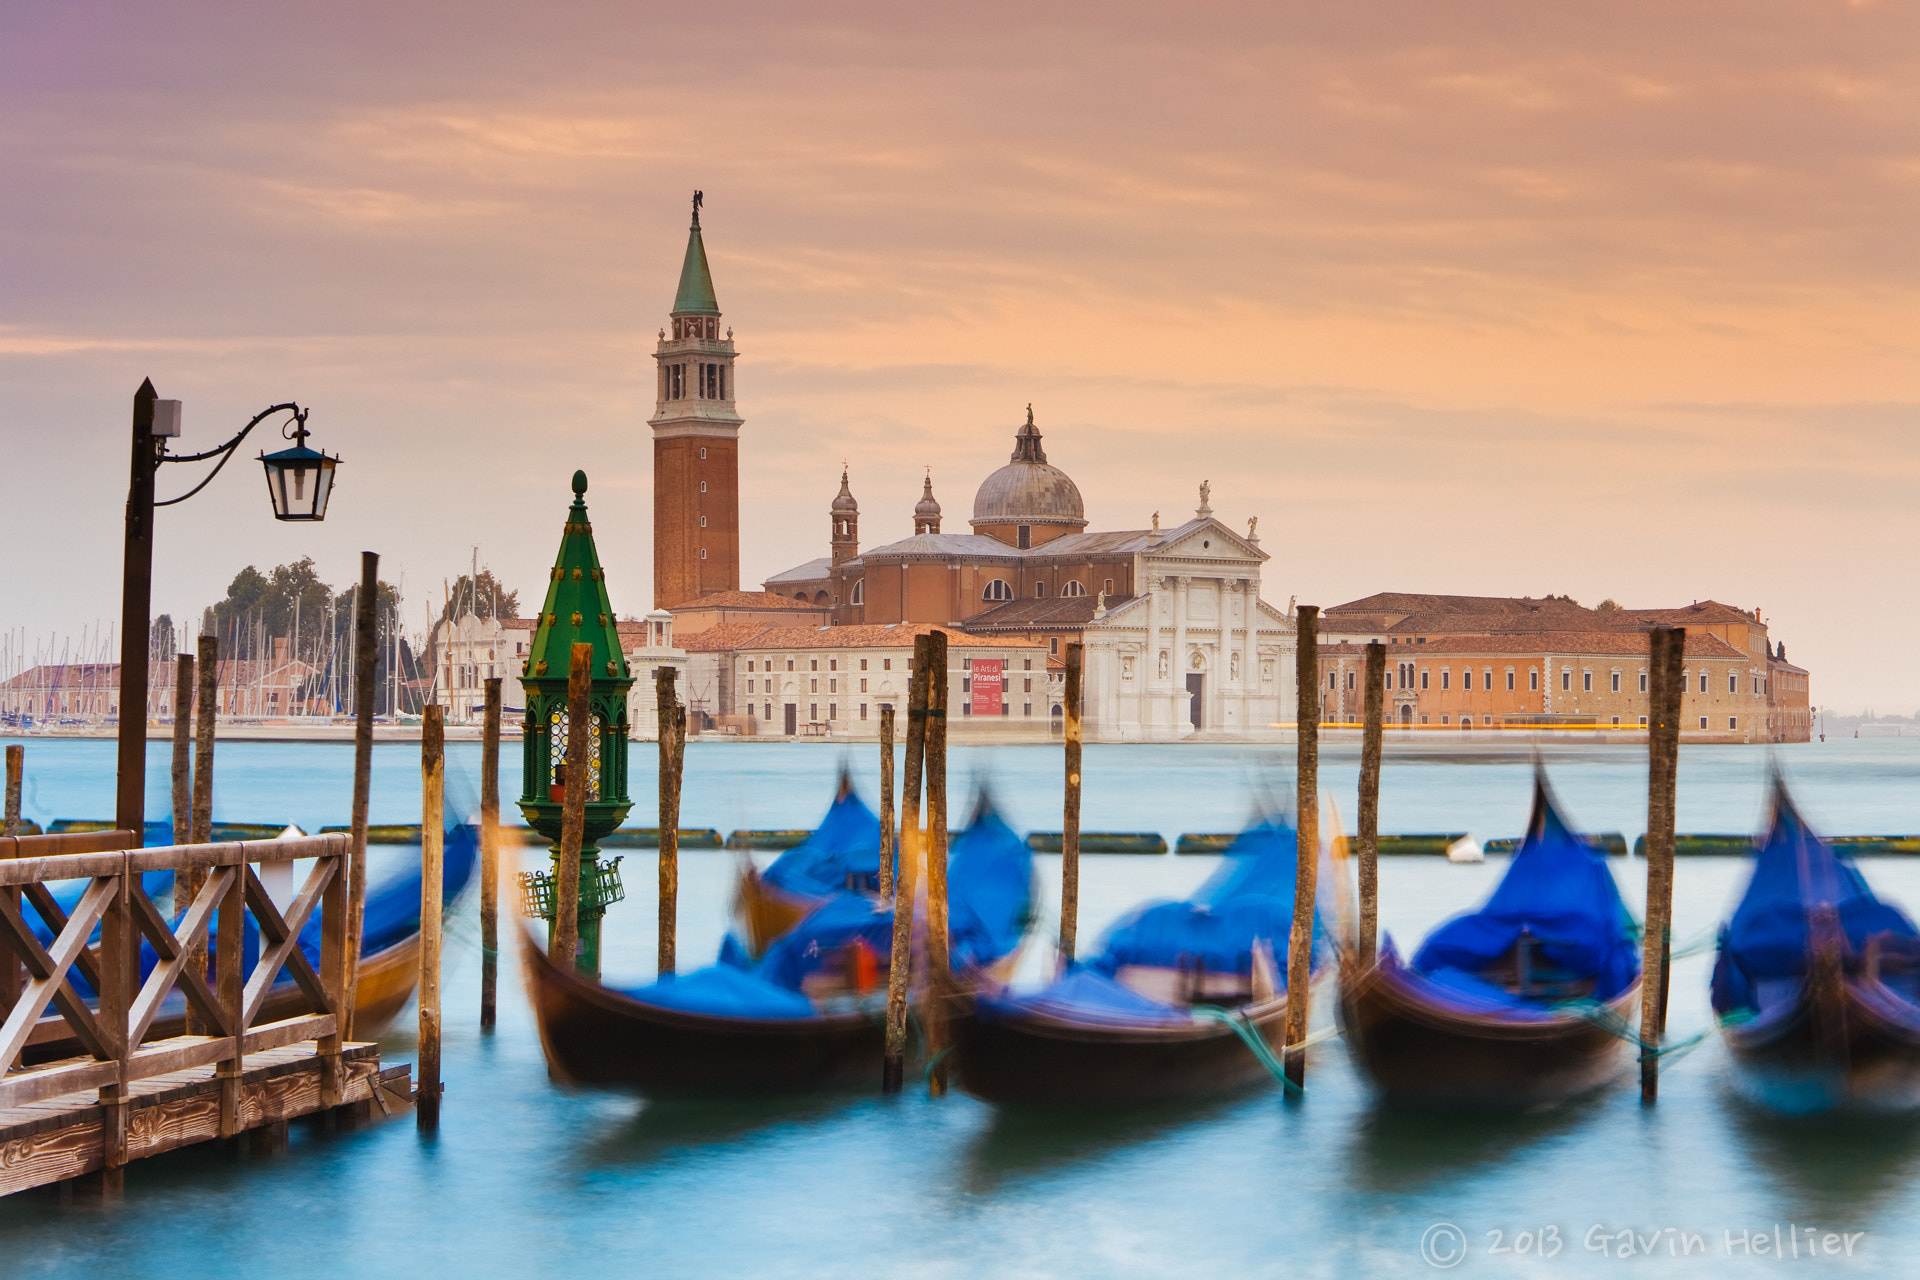 Photograph Maggiore Island, Venice, Italy by Gavin Hellier on 500px